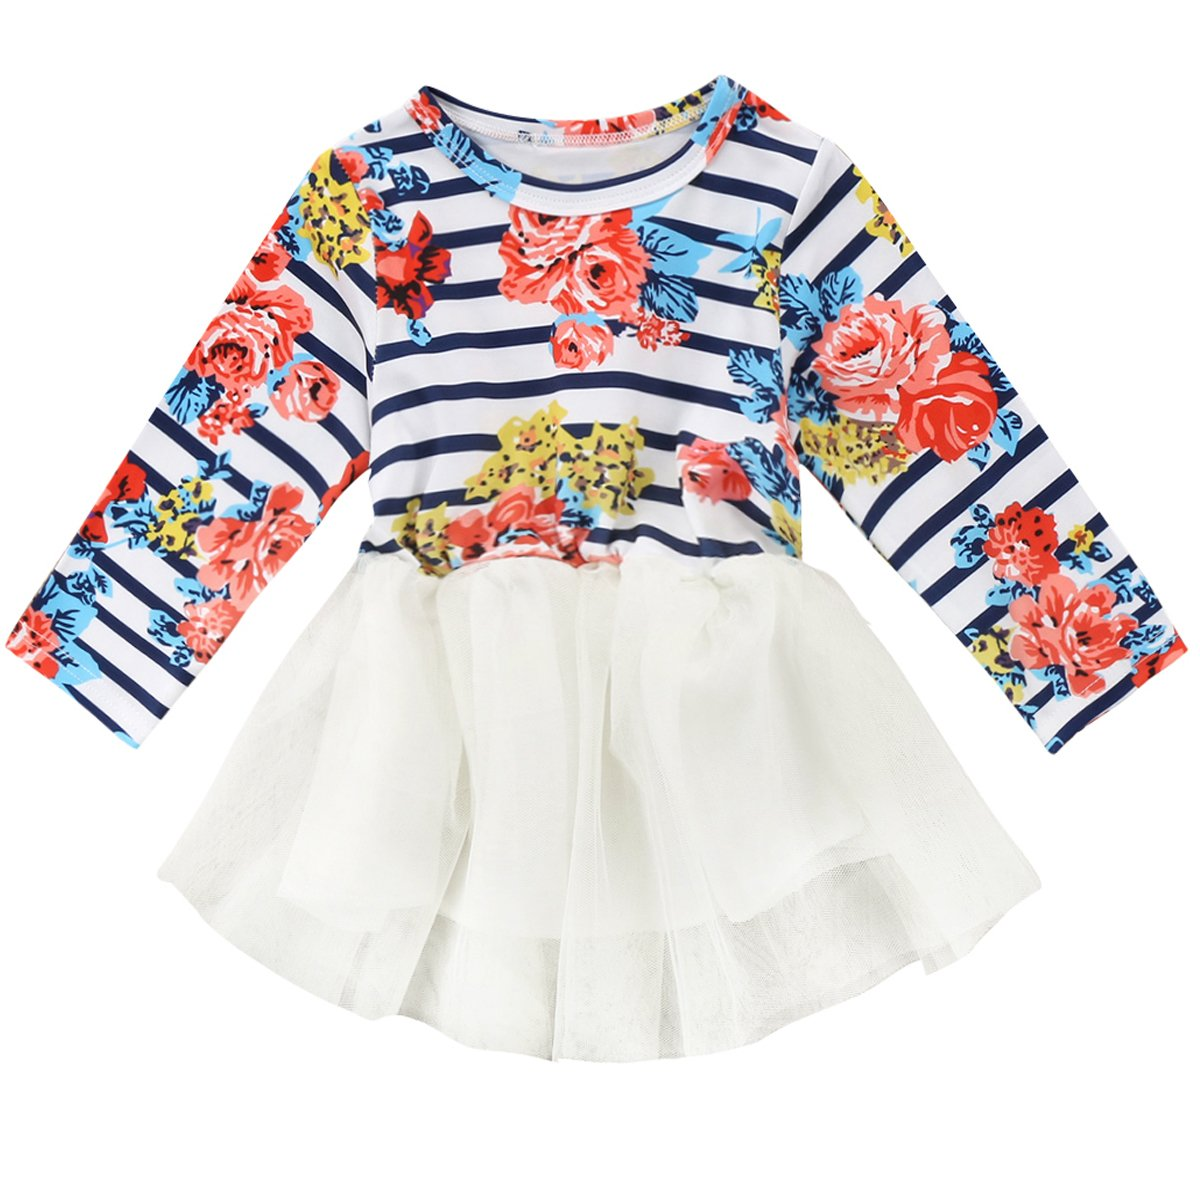 Little Girls Tulle Dress Baby Kids Long Sleeve Floral Printed Tutu Birthday Dress